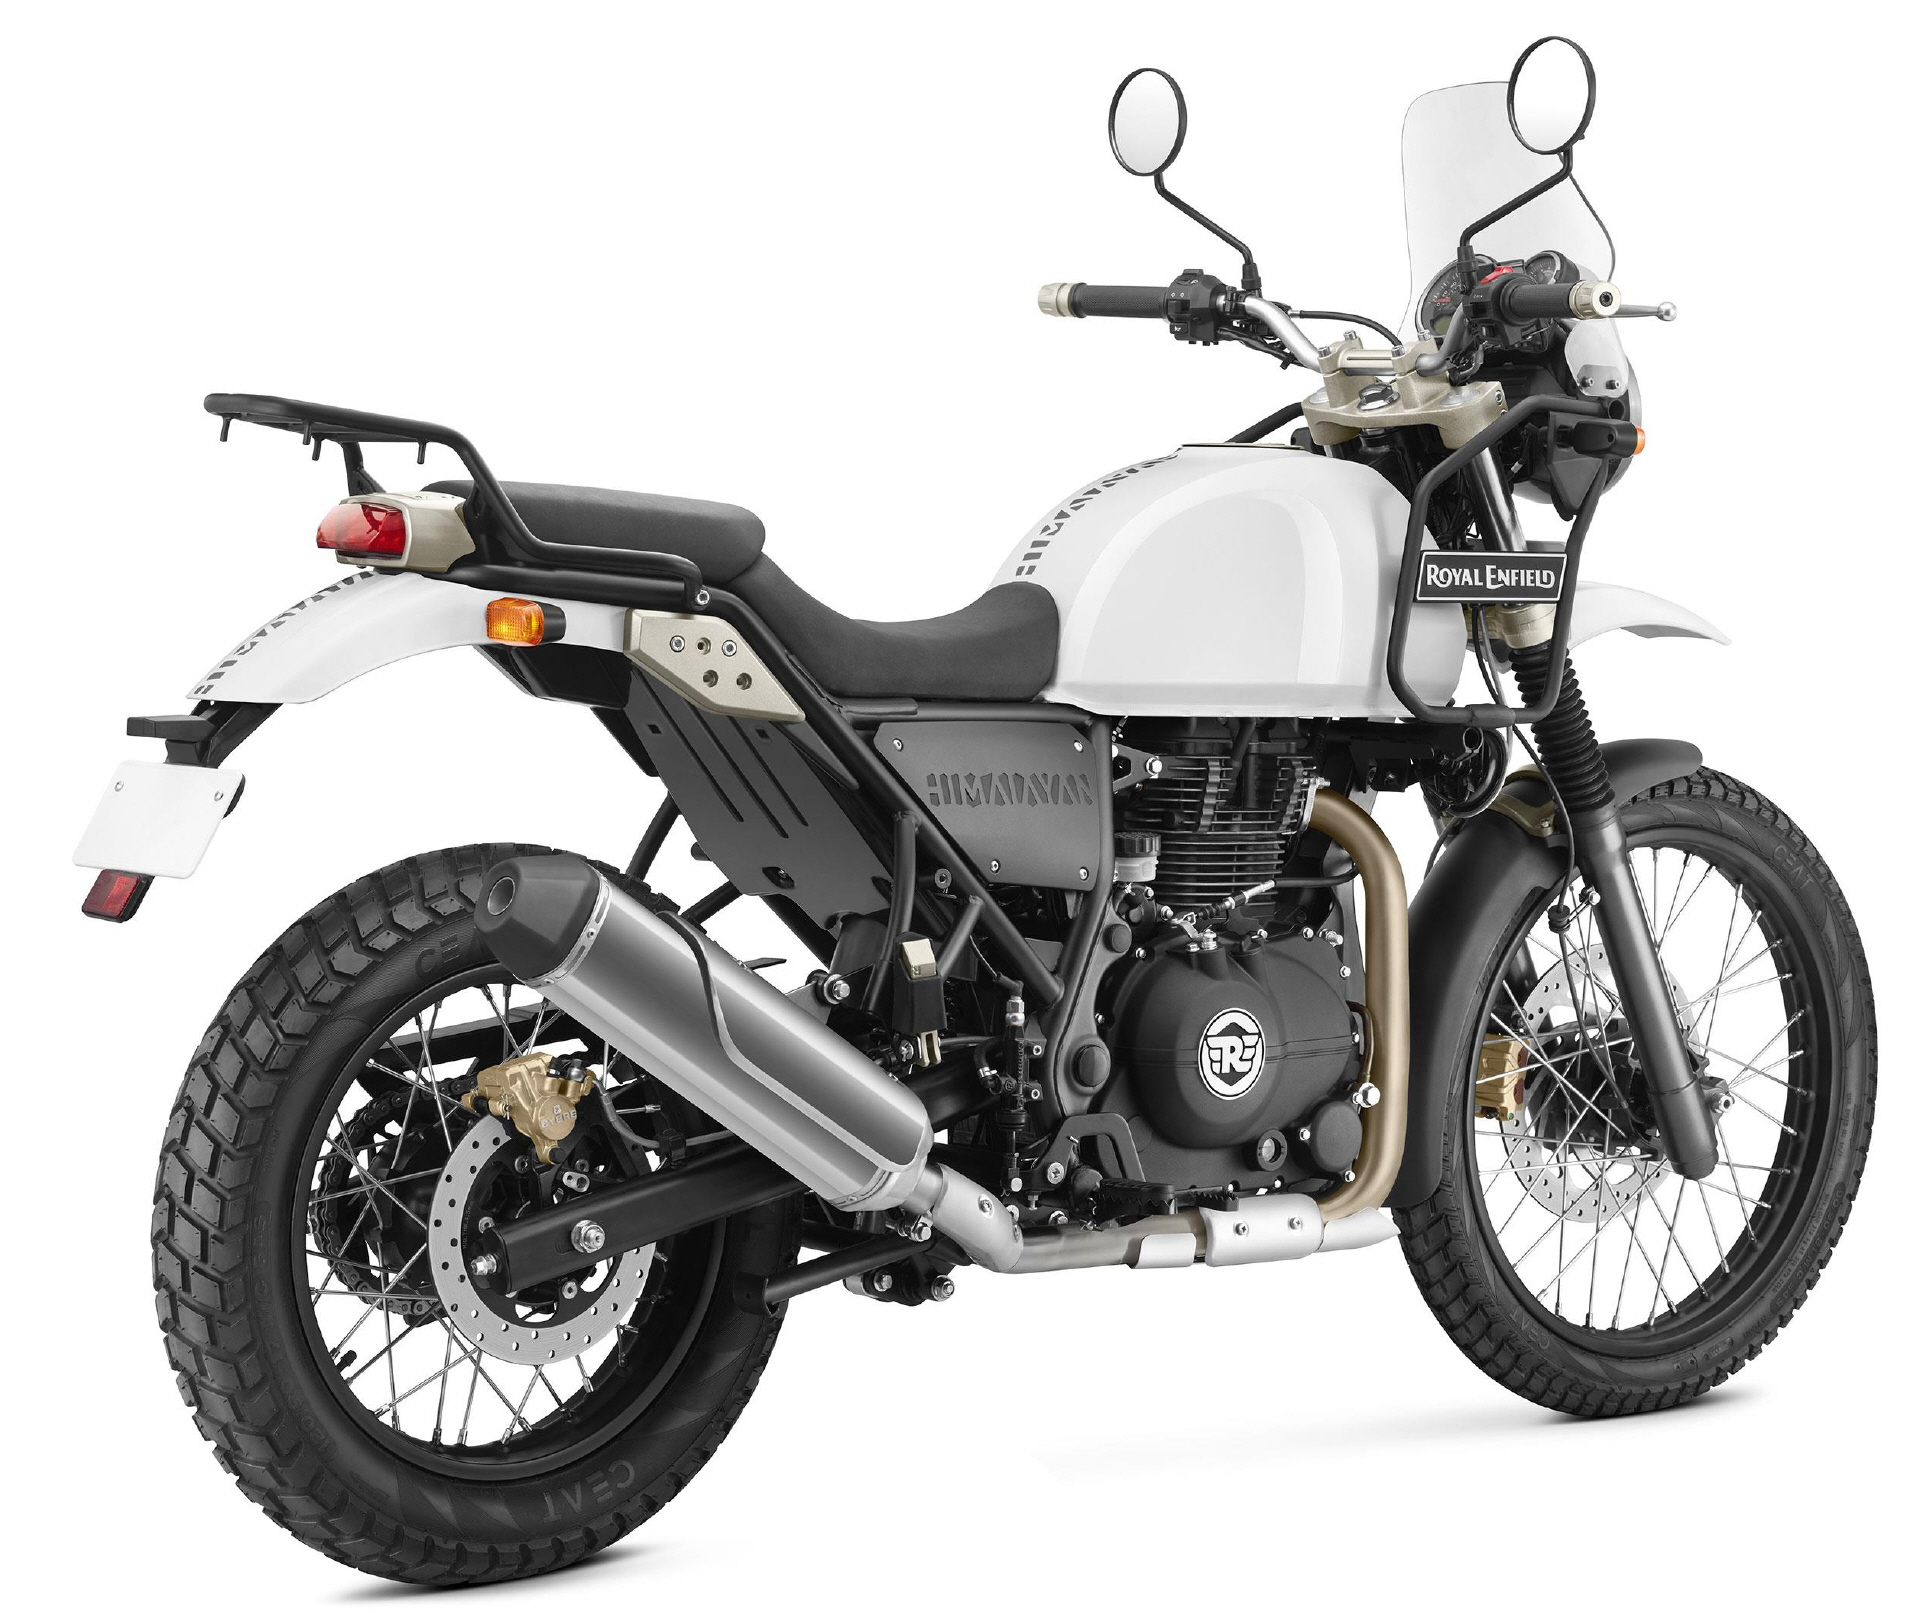 royalenfield_himalayan_09jpg